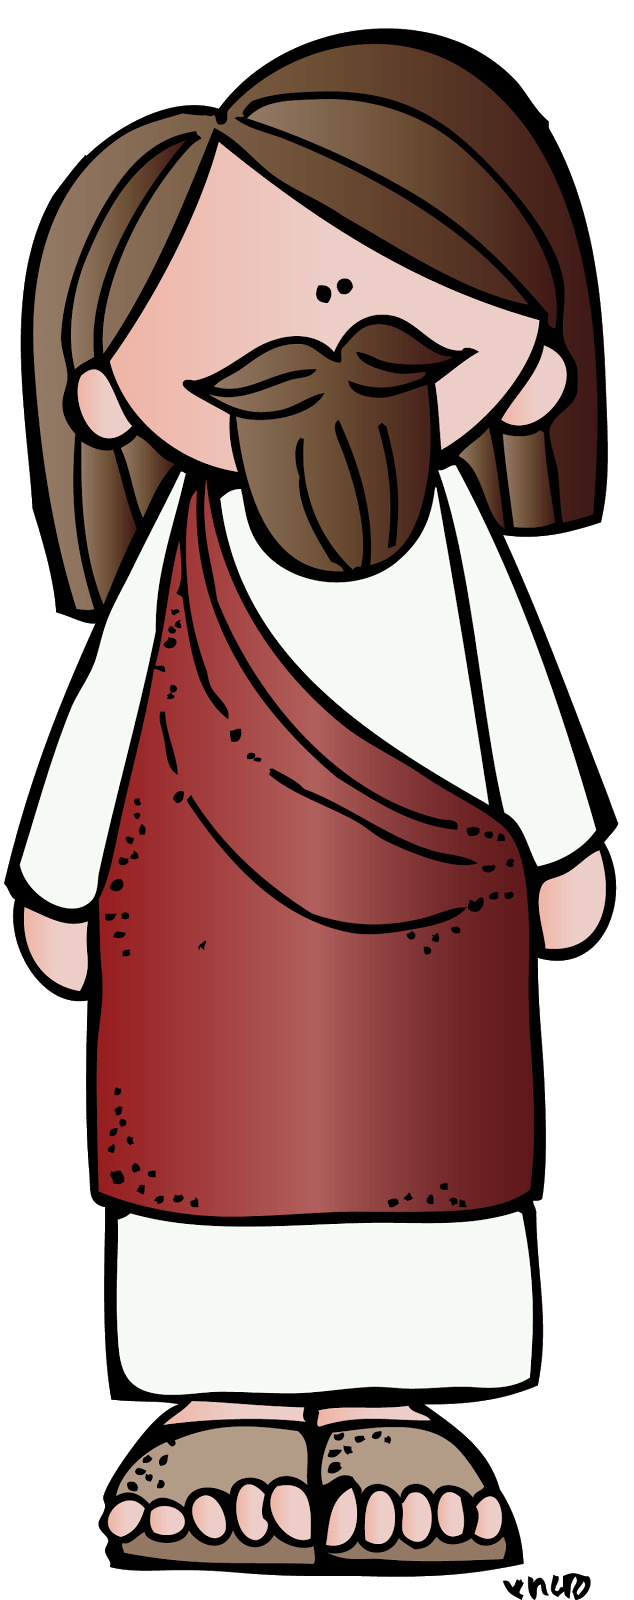 medium resolution of melonheadz lds illustrating christ heaven clipart died jesus